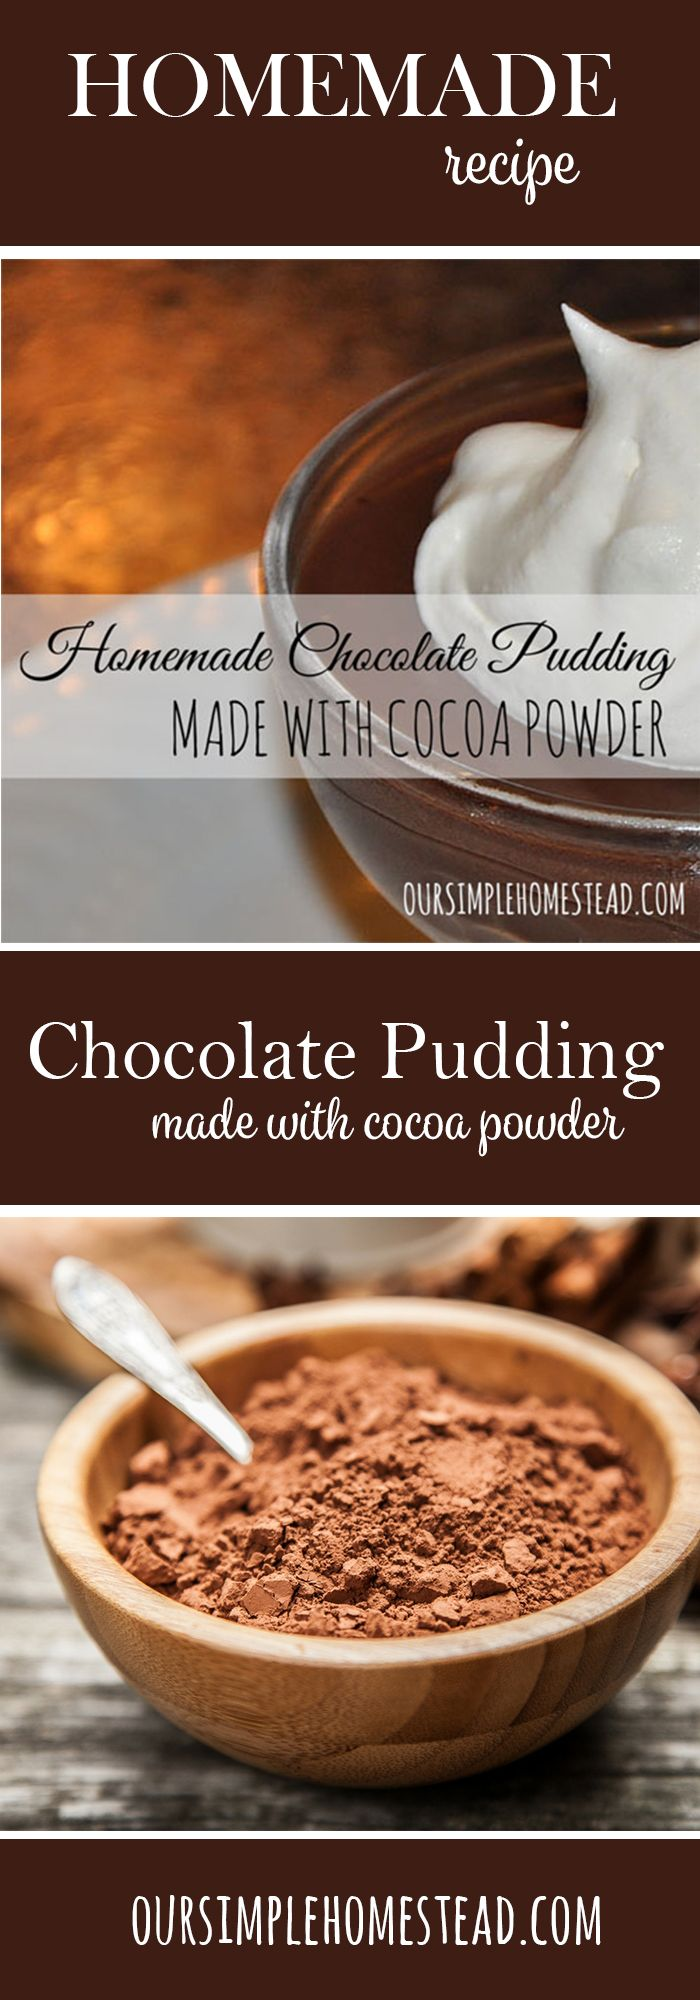 Homemade Chocolate Pudding with Cocoa Powder - Old-fashion recipemade with basicingredients that any homemaker will have on hand.